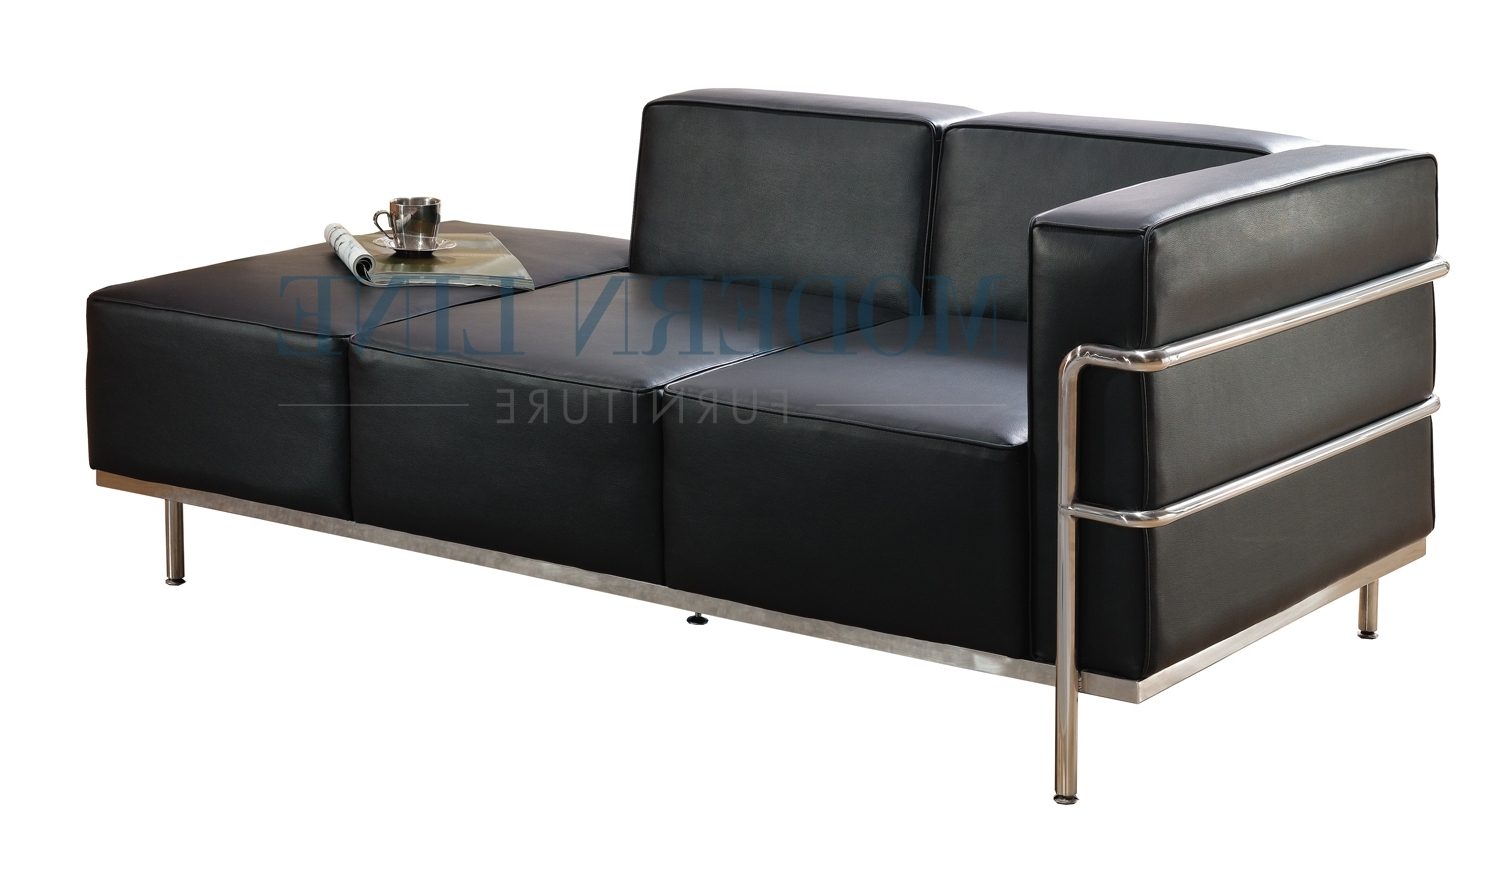 Well Known Black Leather Chaises Regarding Furniture: Elegant Black Leather Chaise For Living Room (View 15 of 15)